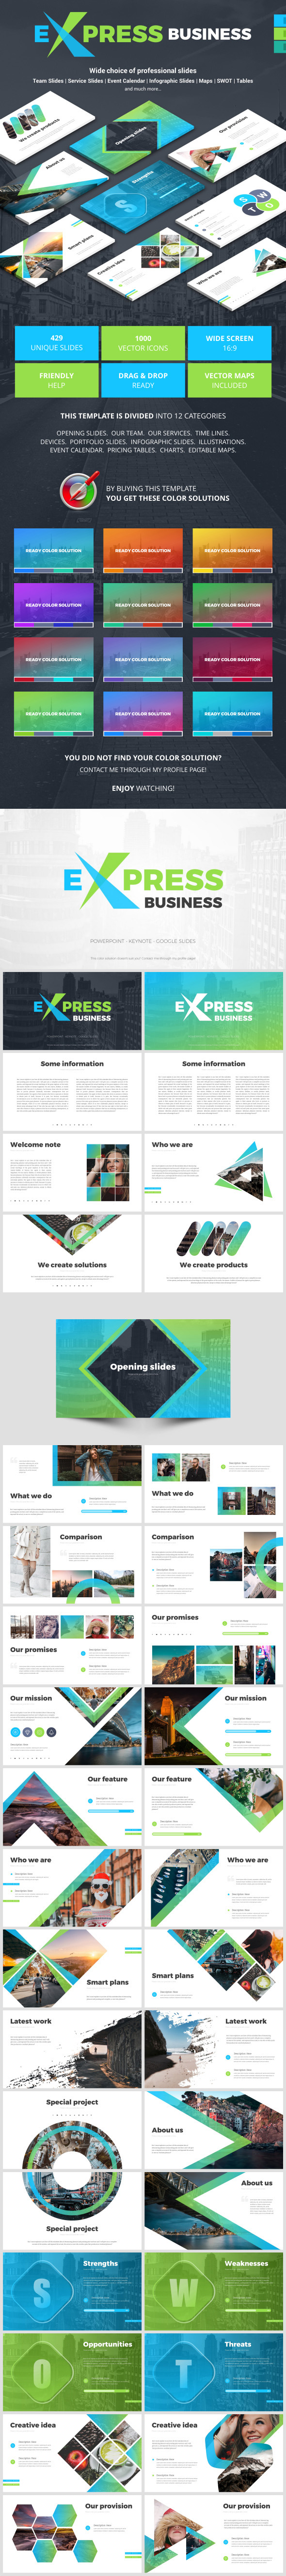 Business Express - Business Keynote Templates